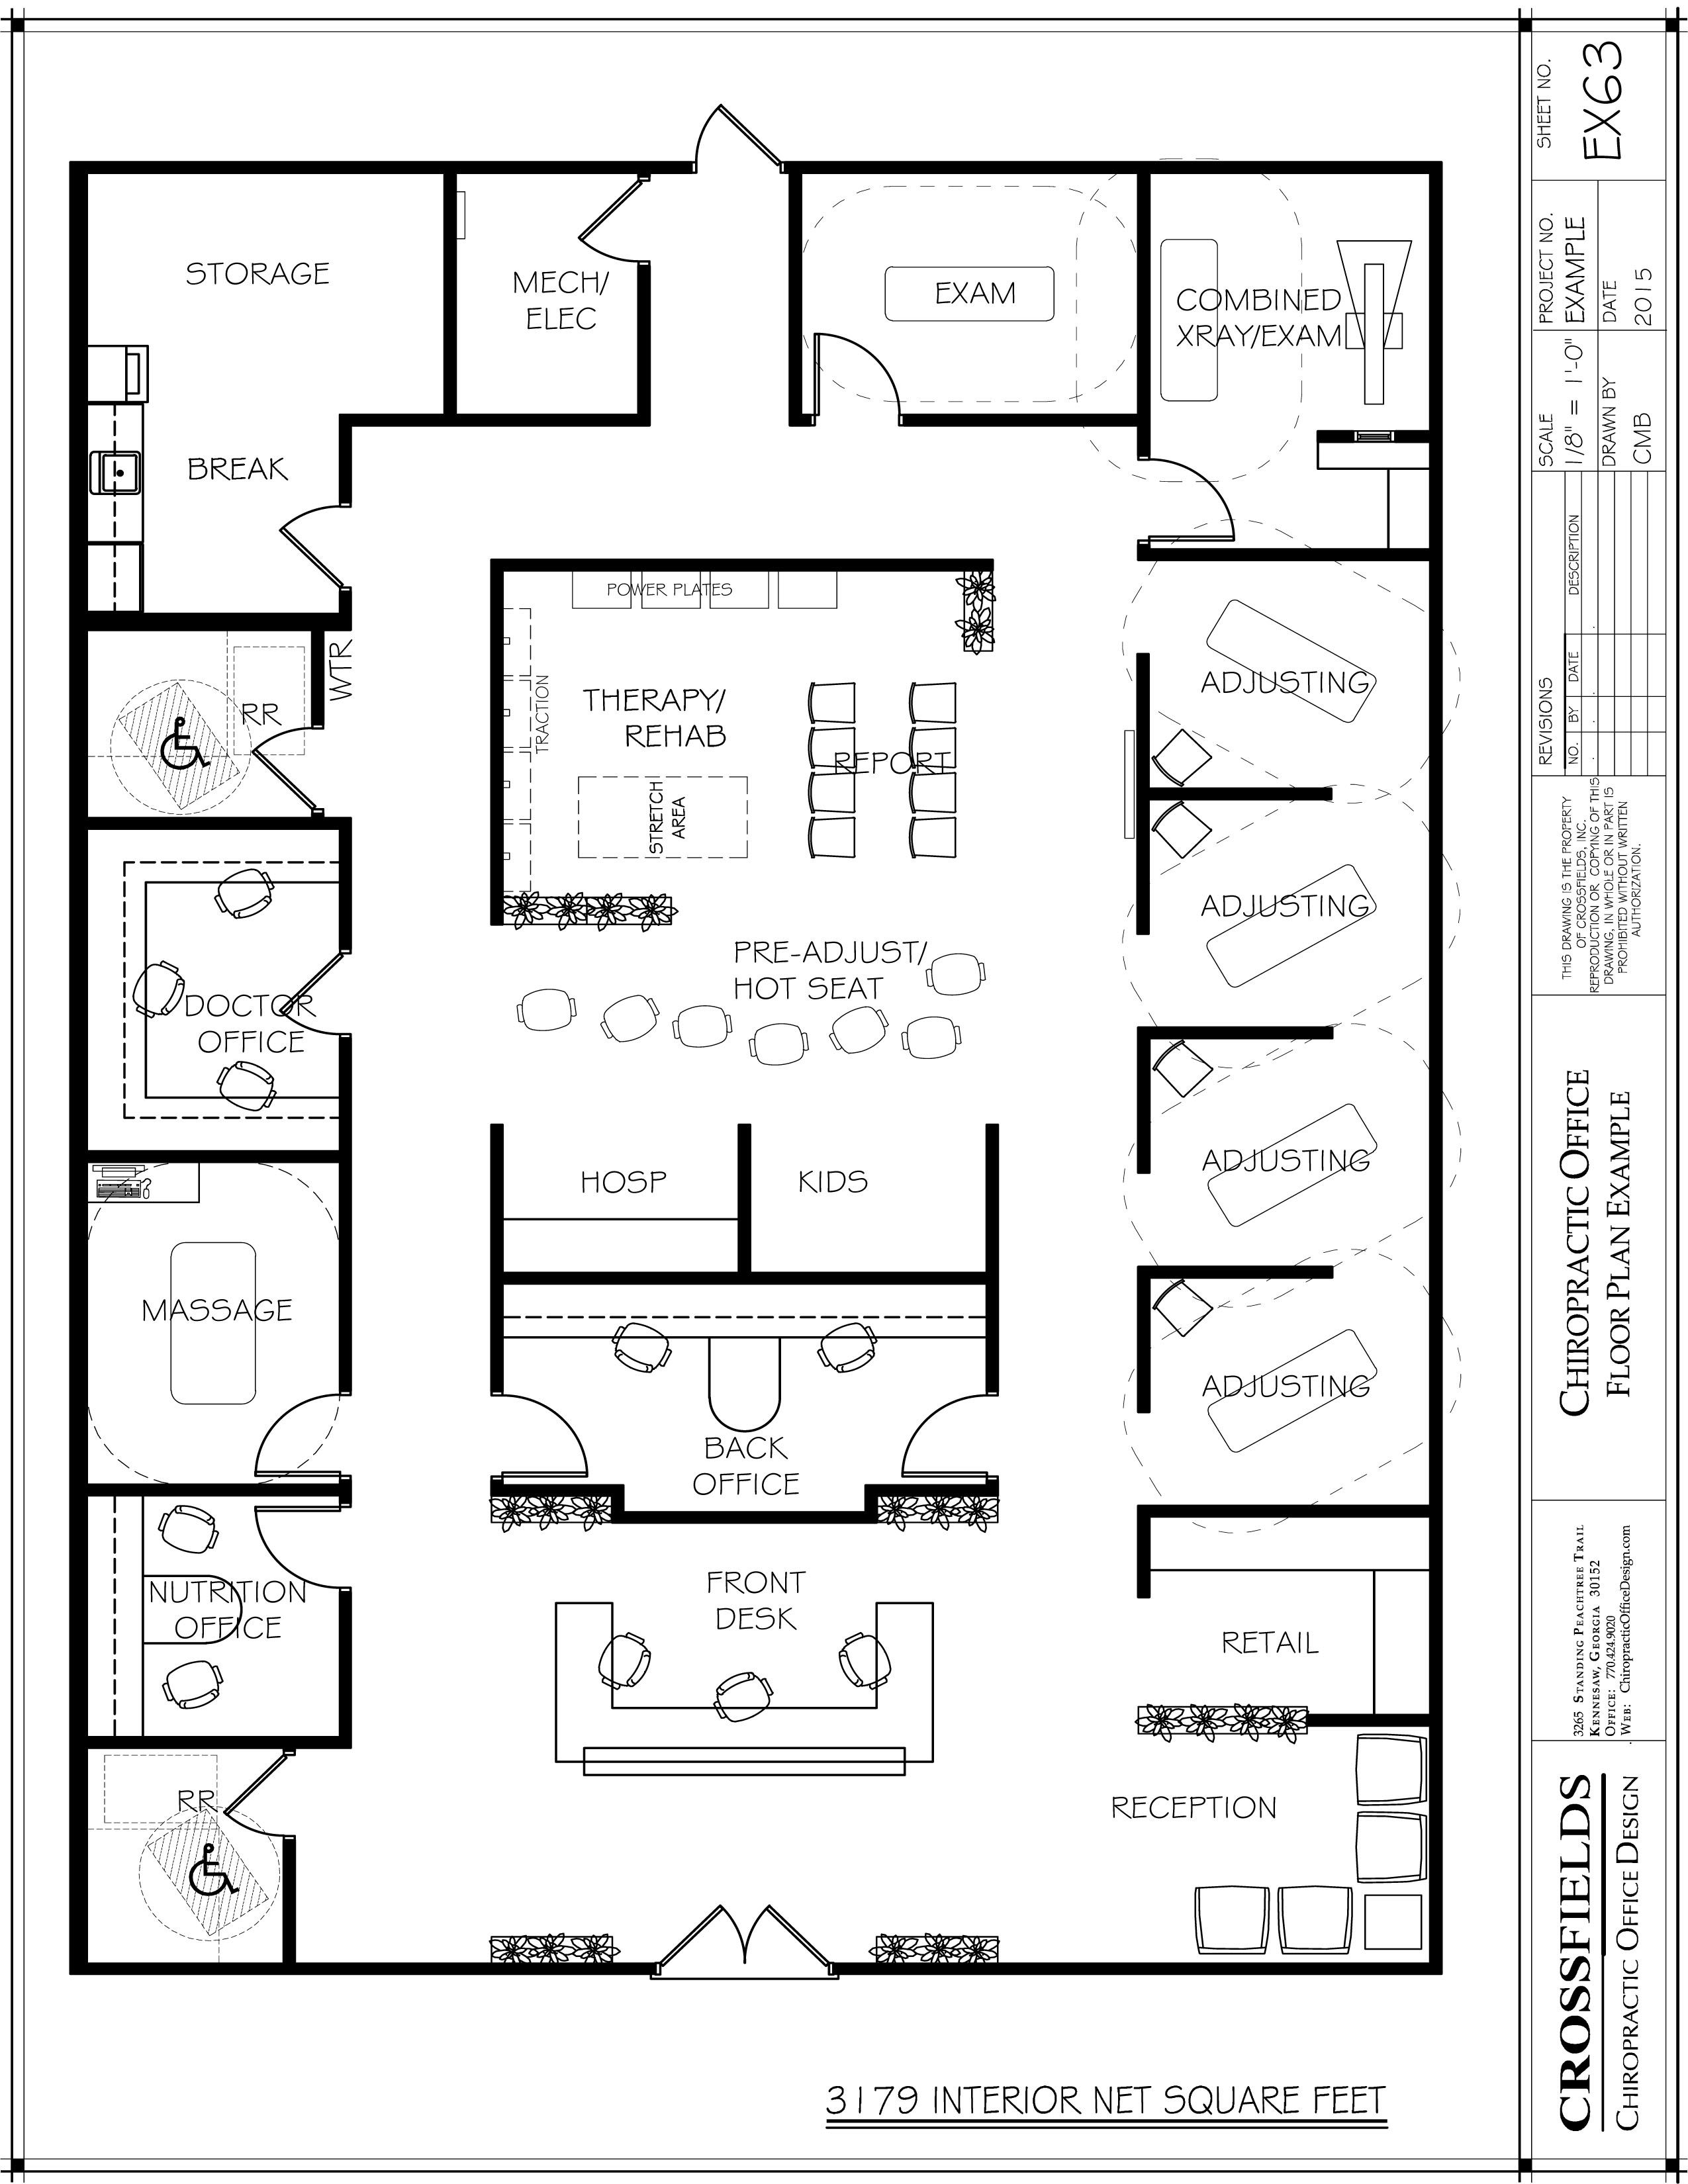 Best Chair Post Back Surgery Egg Swing Indoor Chiropractic Office Floor Plans My Very Own Clinic